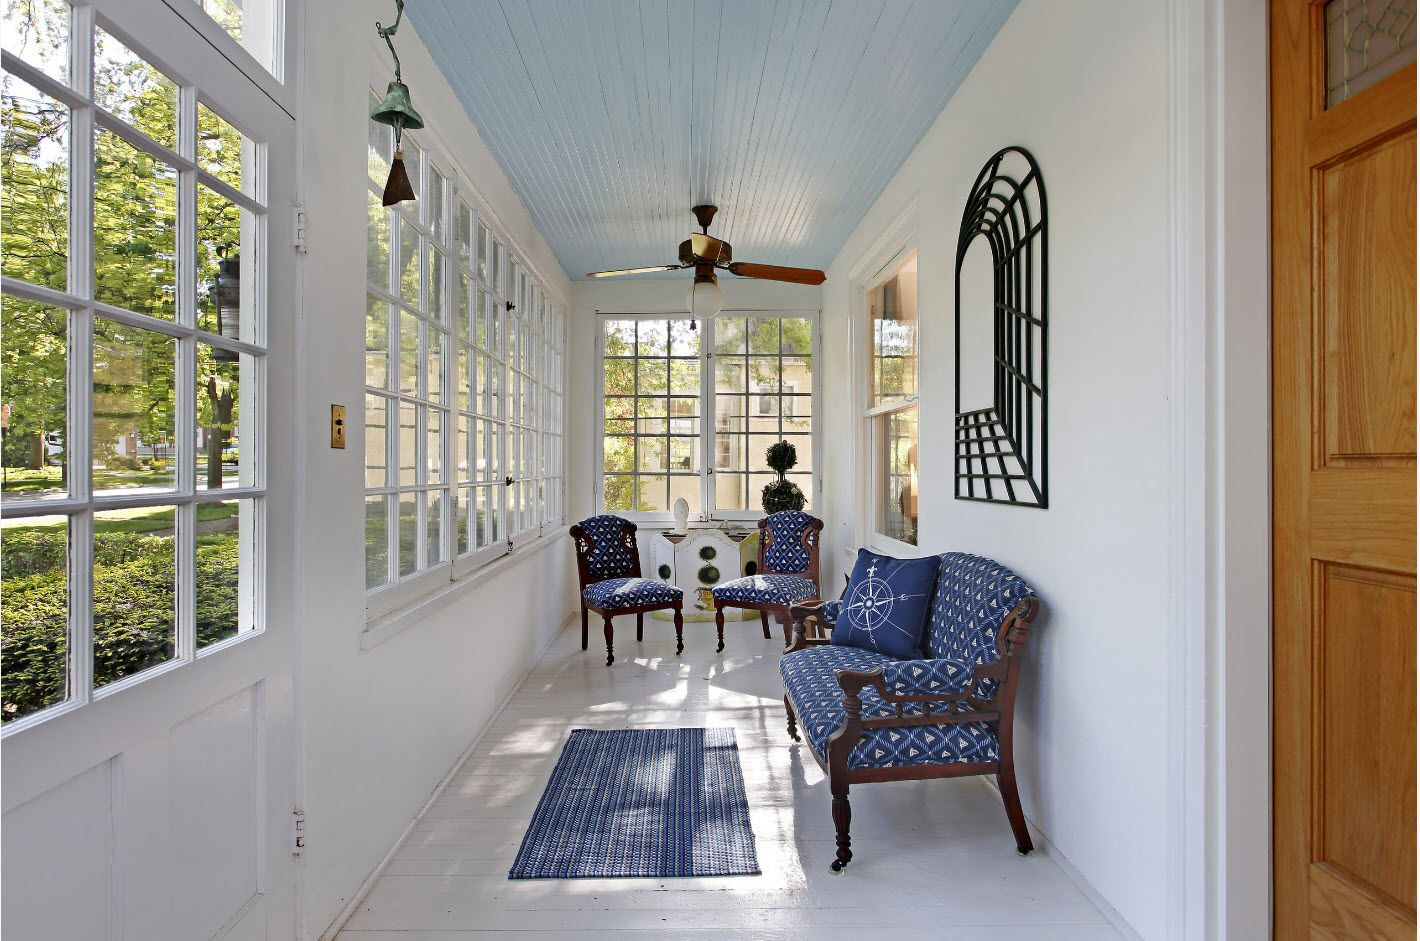 Classic gray tones for the furnished narrow porch with latticed windows